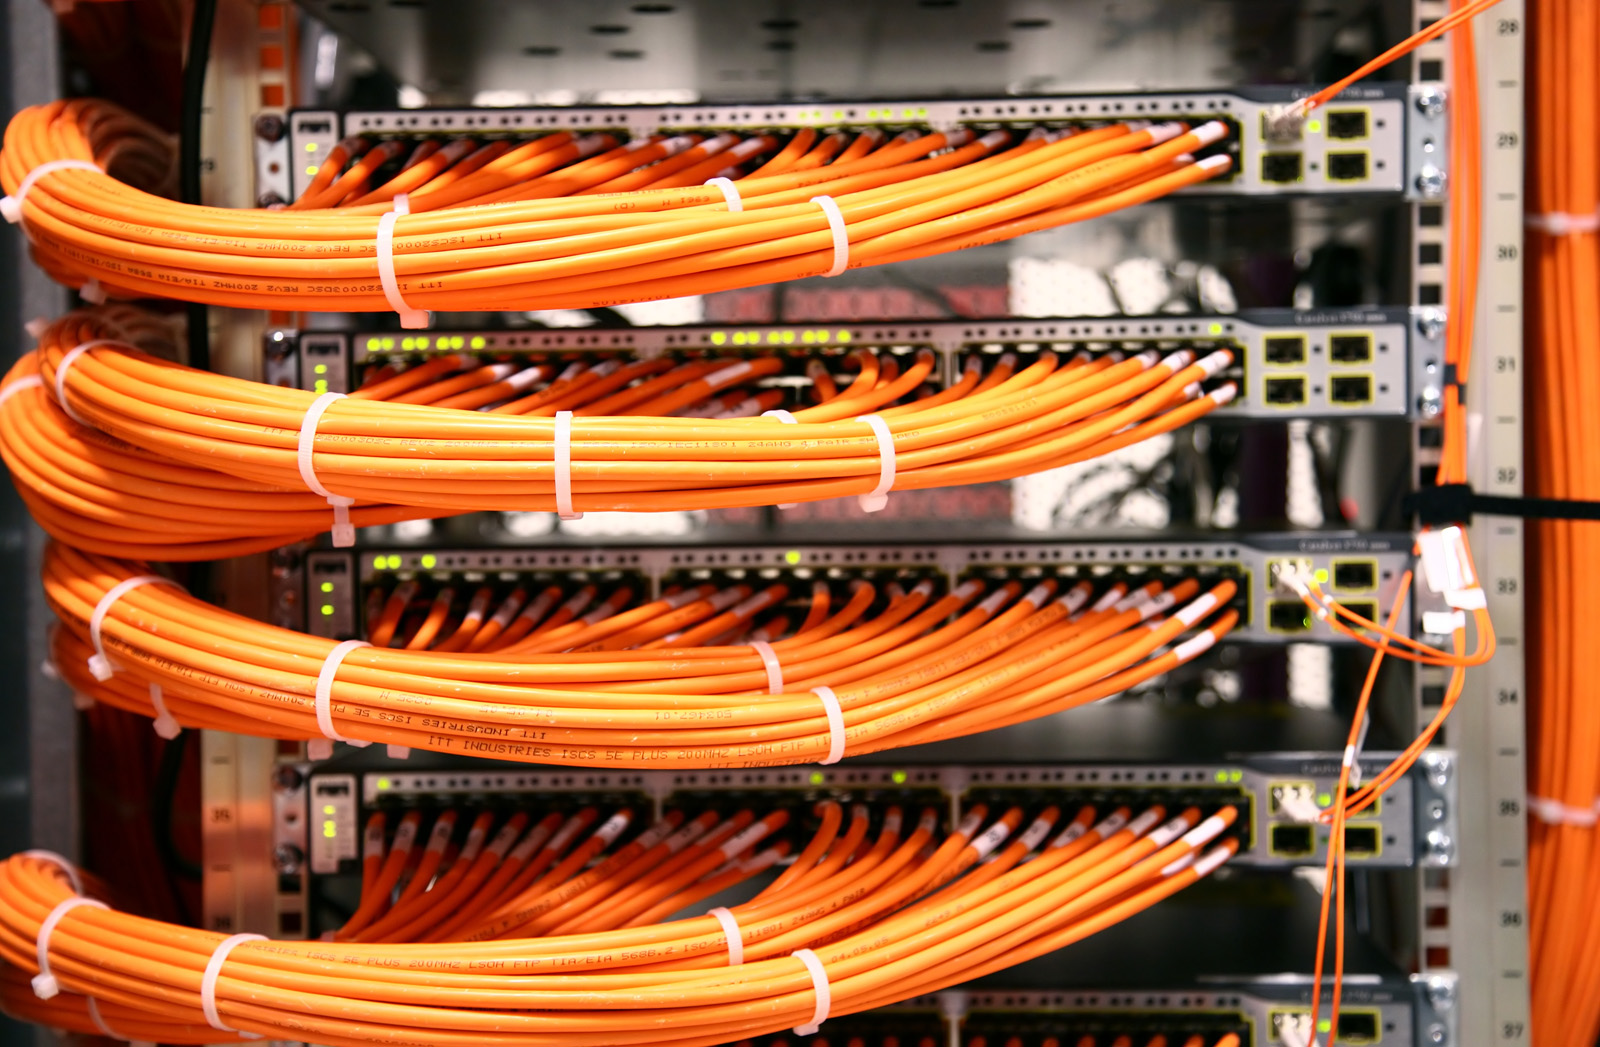 Grantville GA Pro On Site Cabling for Voice & Data Networks, Low Voltage Services